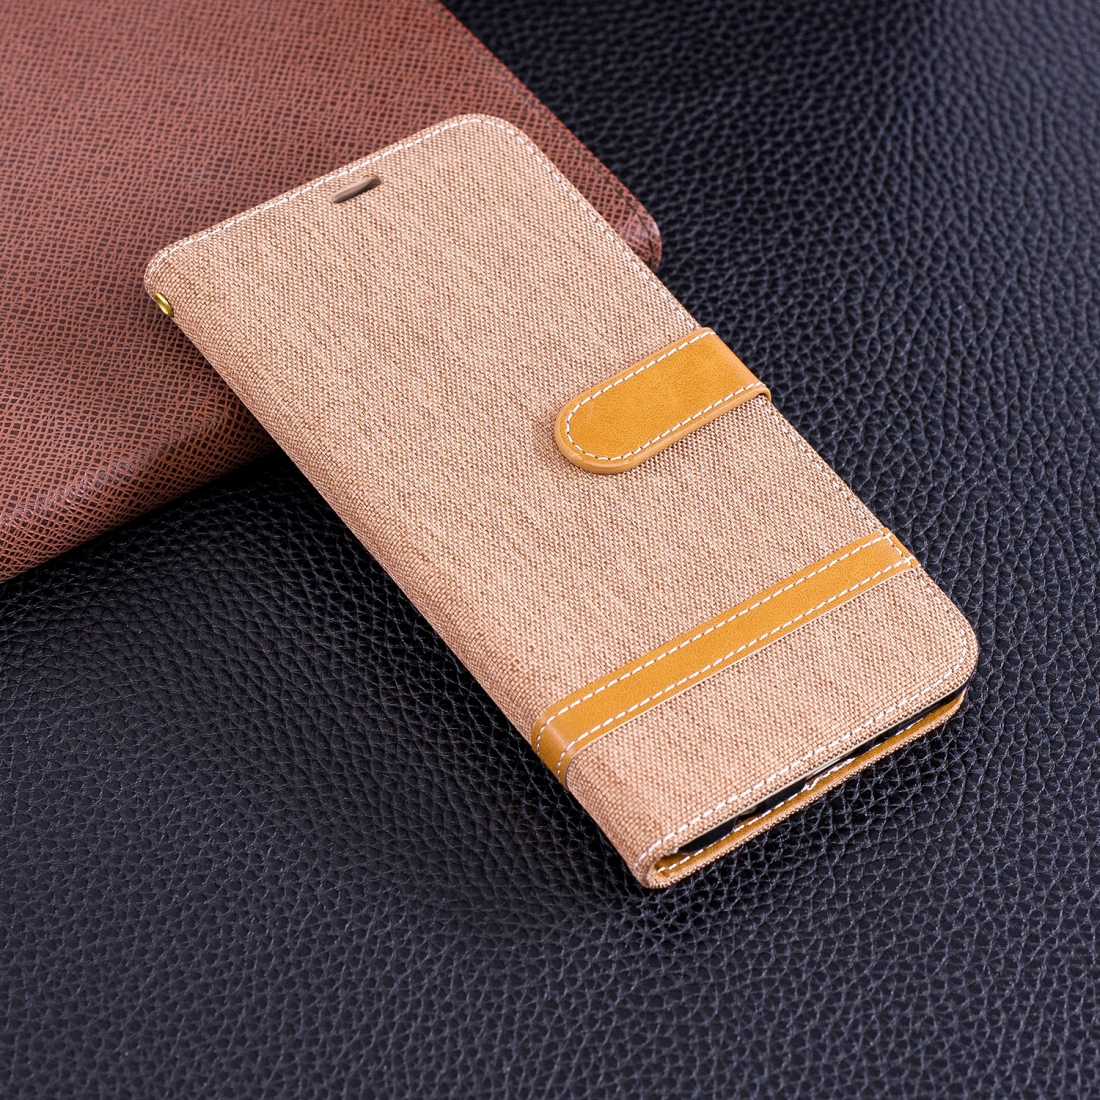 Color Matching Denim Texture Leather Case For Huawei Y9